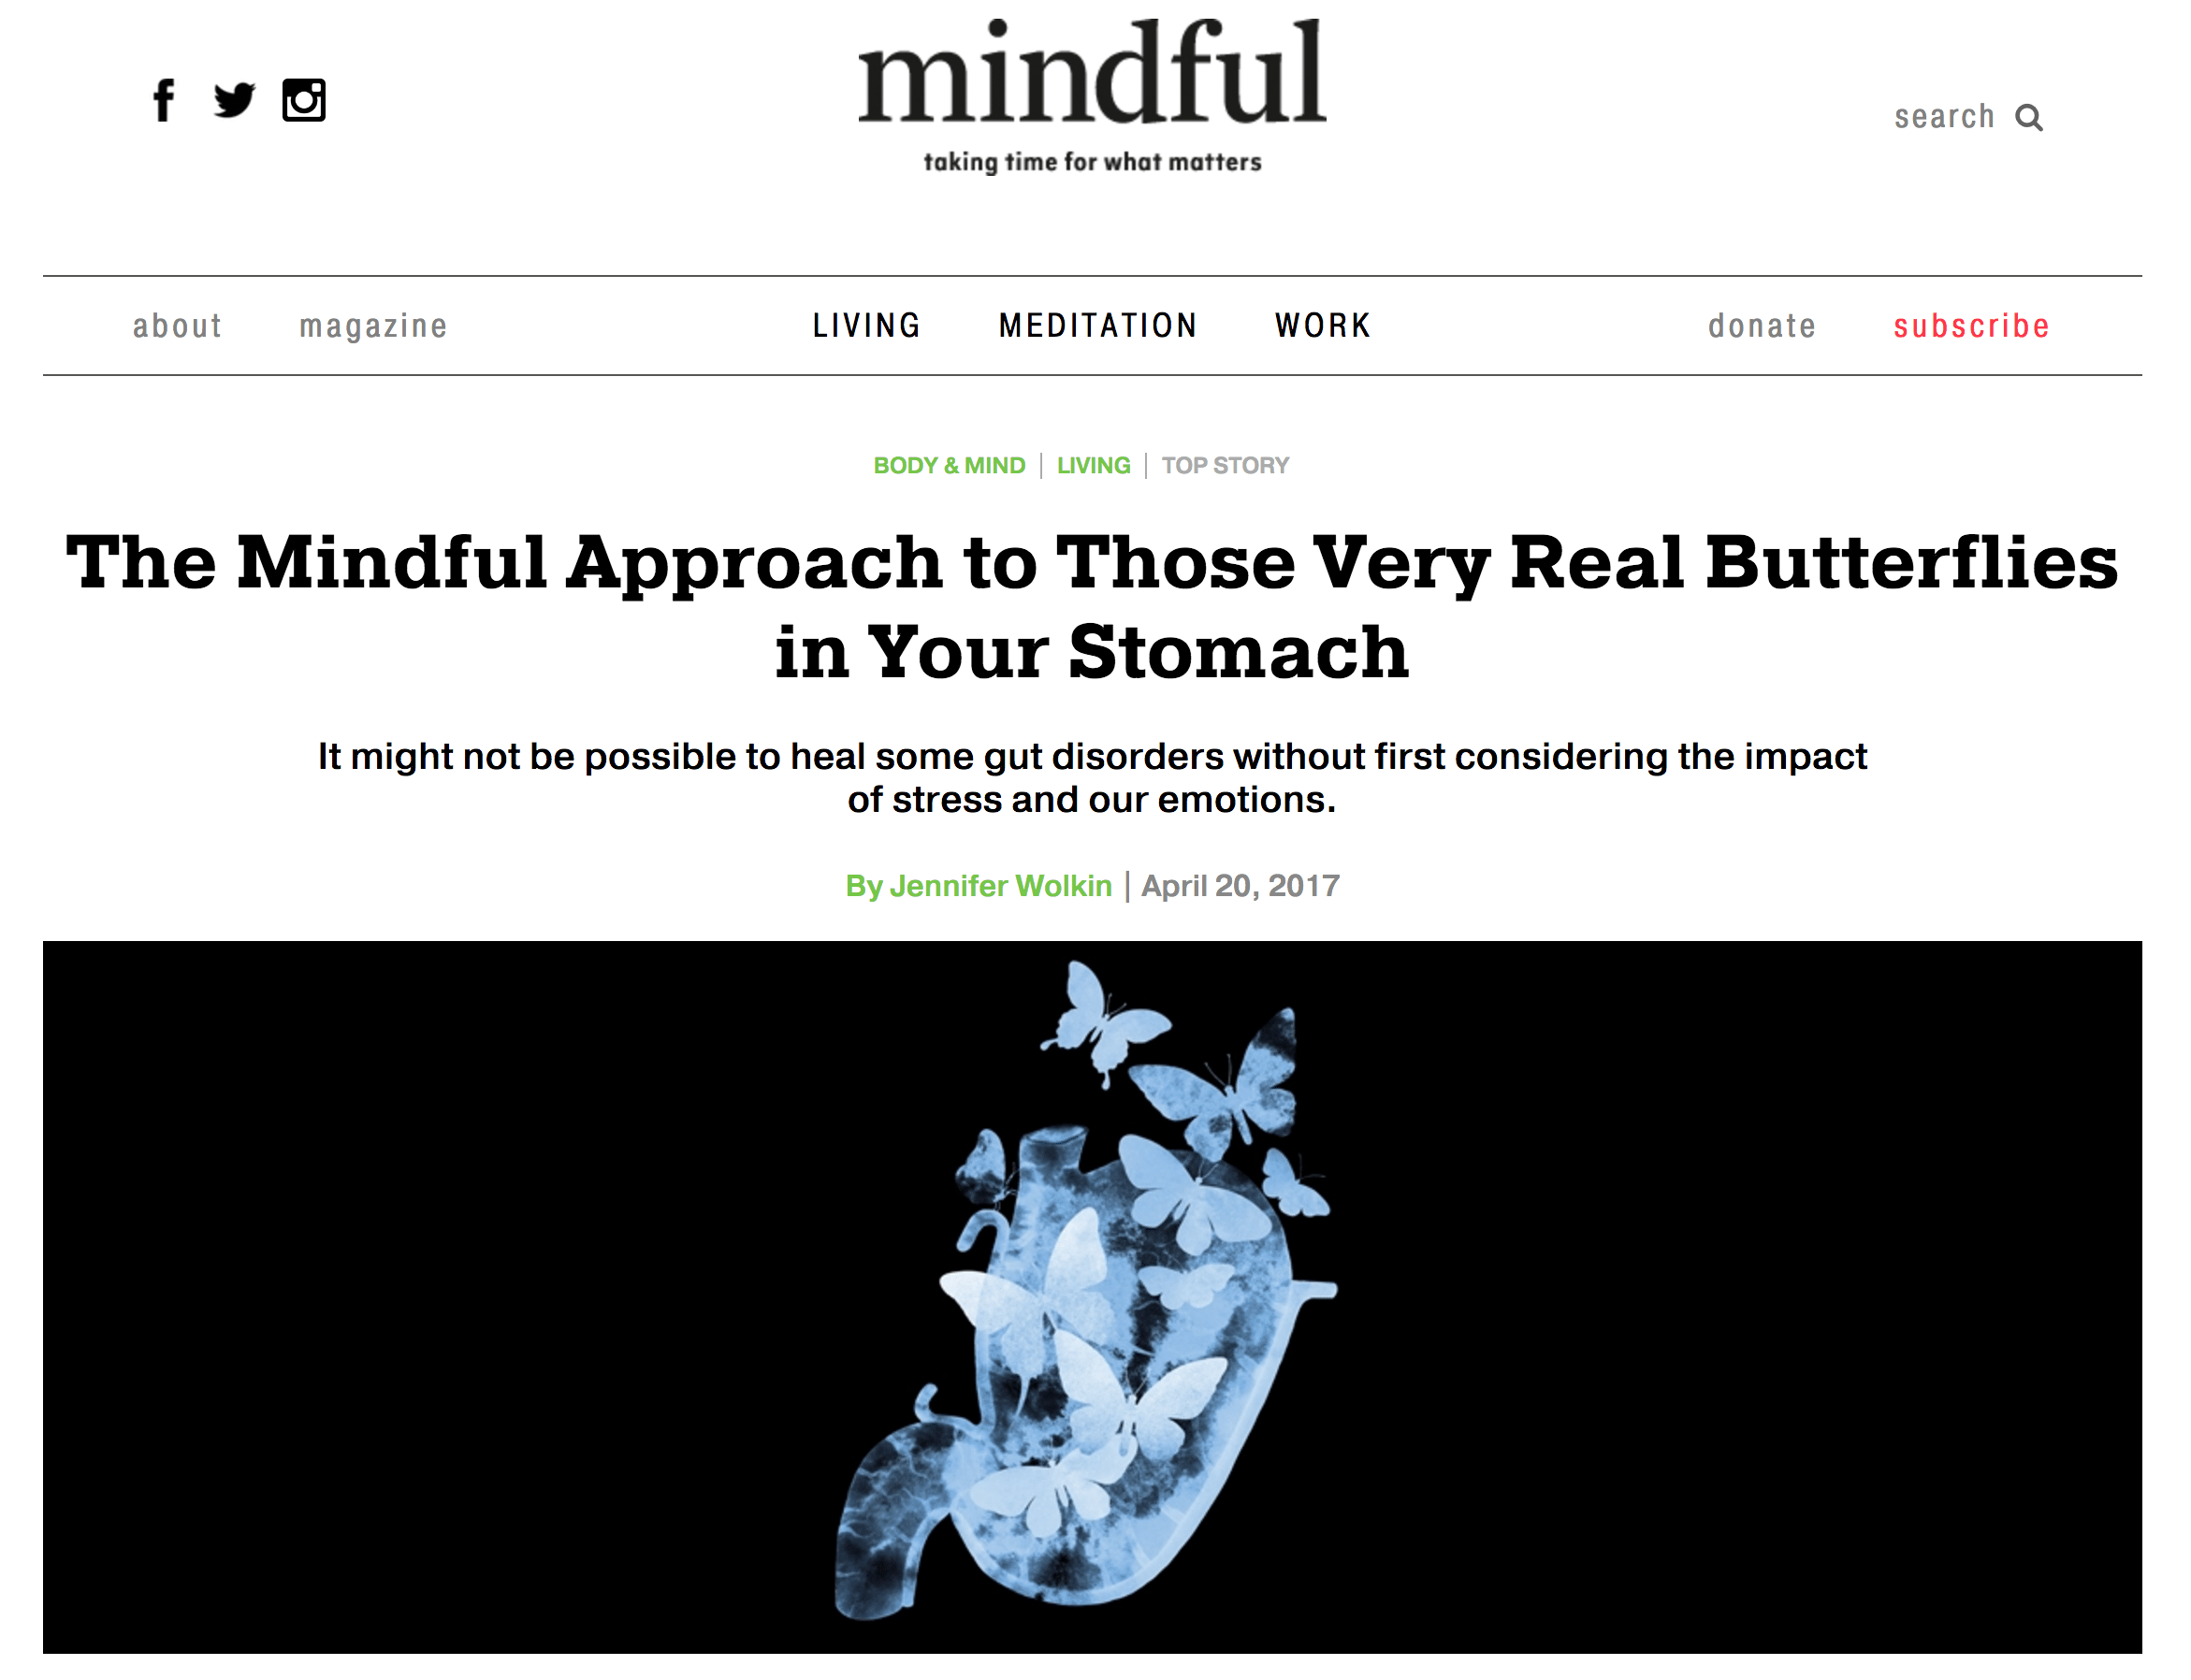 Repost: The Mindful Approach to Those Very Real Butterflies in Your Stomach